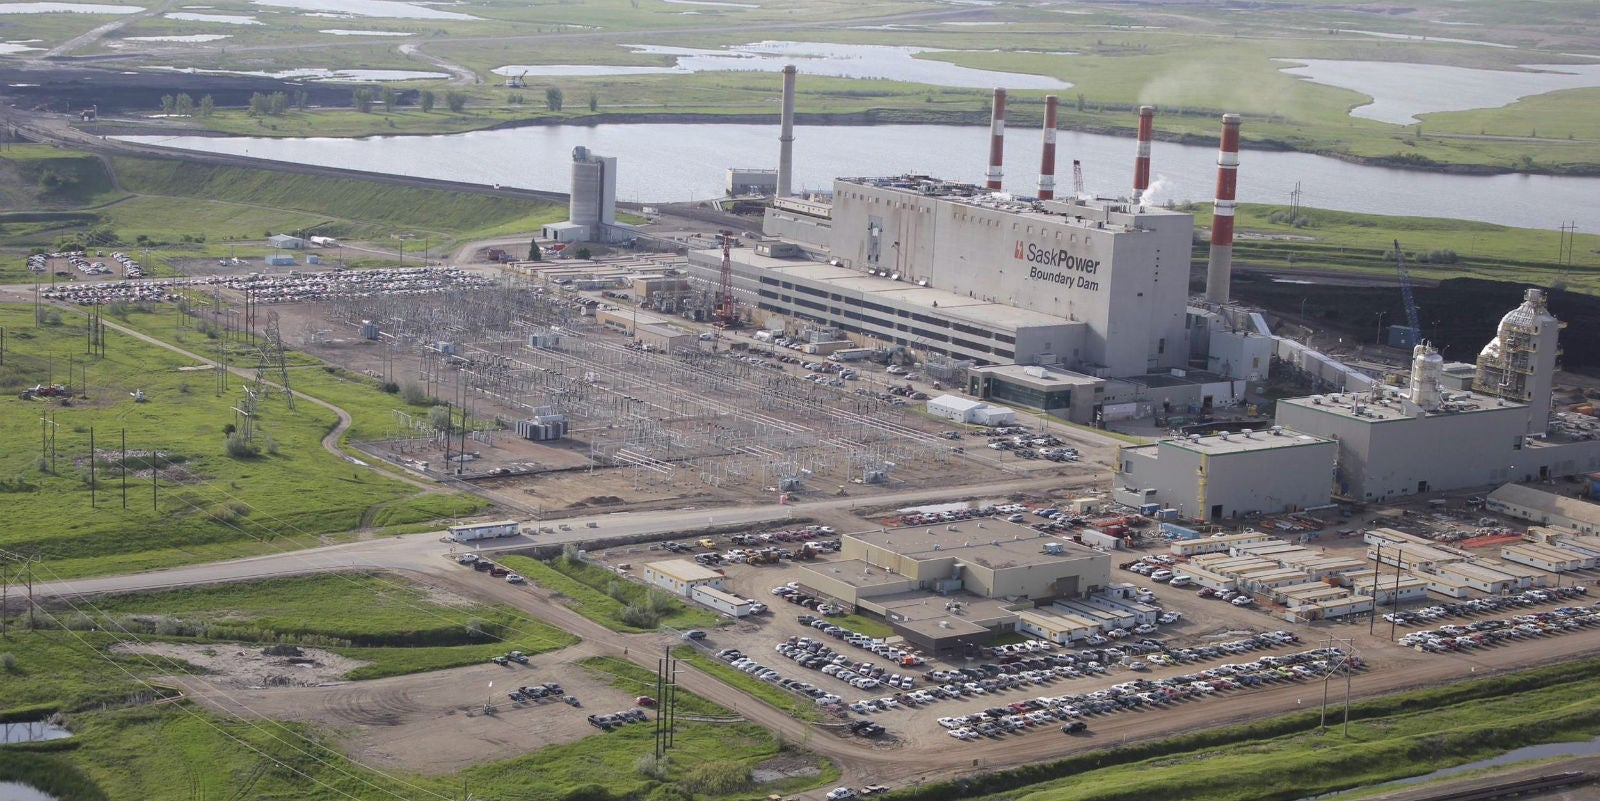 Canada Ushers in Clean Coal With a Carbon-Capturing Power Plant